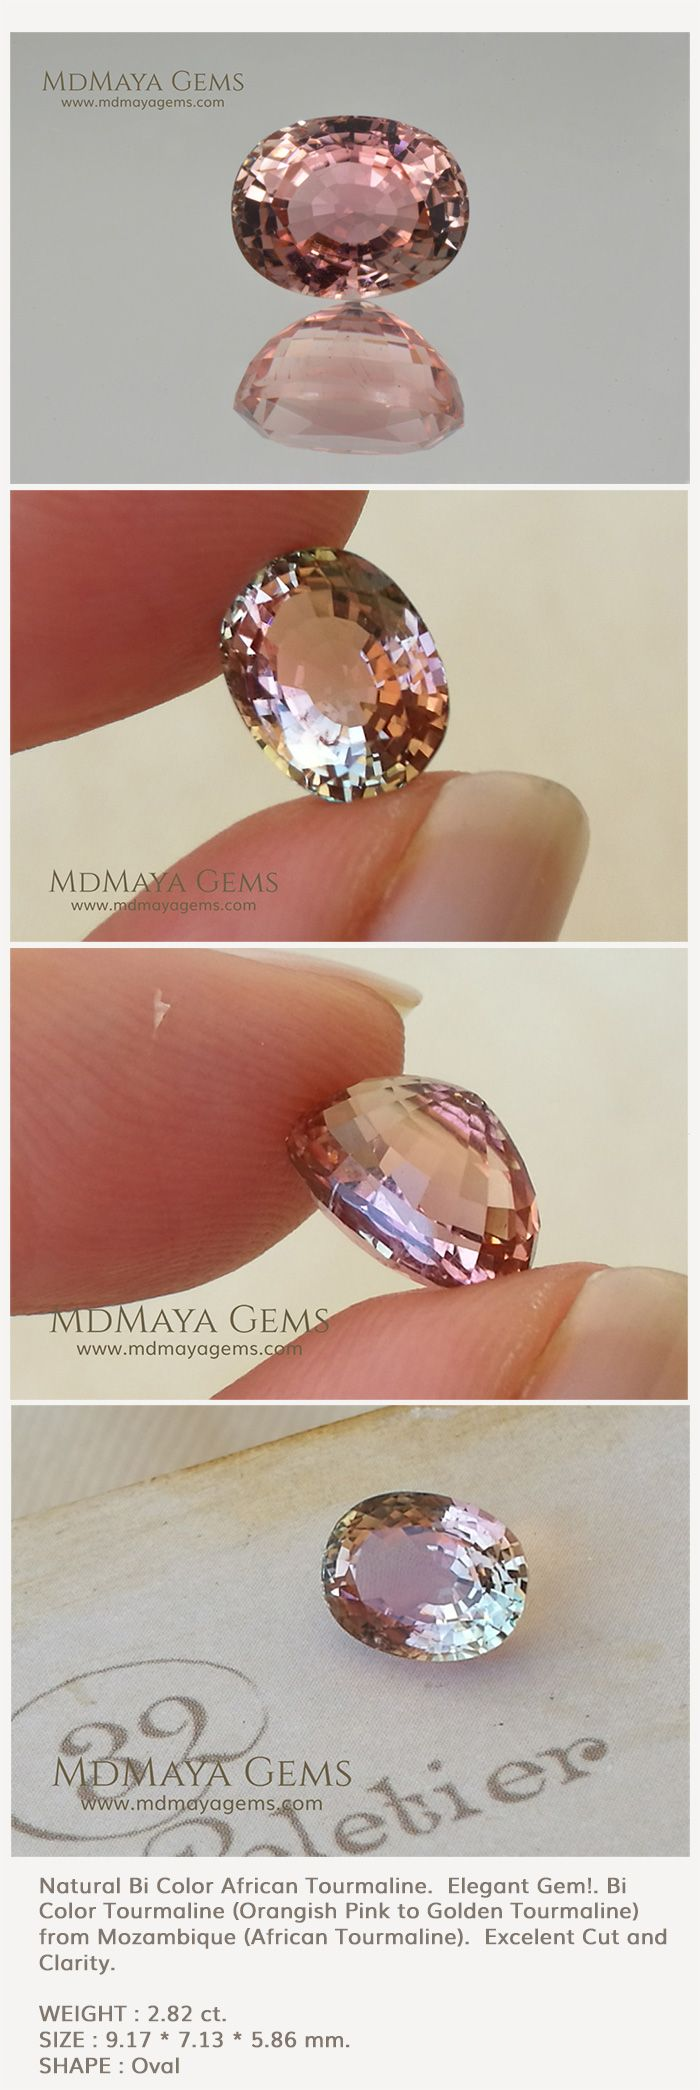 Natural Bi Color African Tourmaline.  Elegant Gem!. Bi Color Tourmaline (Orangish Pink to Golden) from Mozambique. This gemstone with its pale colors is incredibly beautiful, has an excellent cut and clarity. Perfect for your bespoke jewelry. Oval Cut. 2.82 ct. A great gemstone at a low price, don't miss it!.